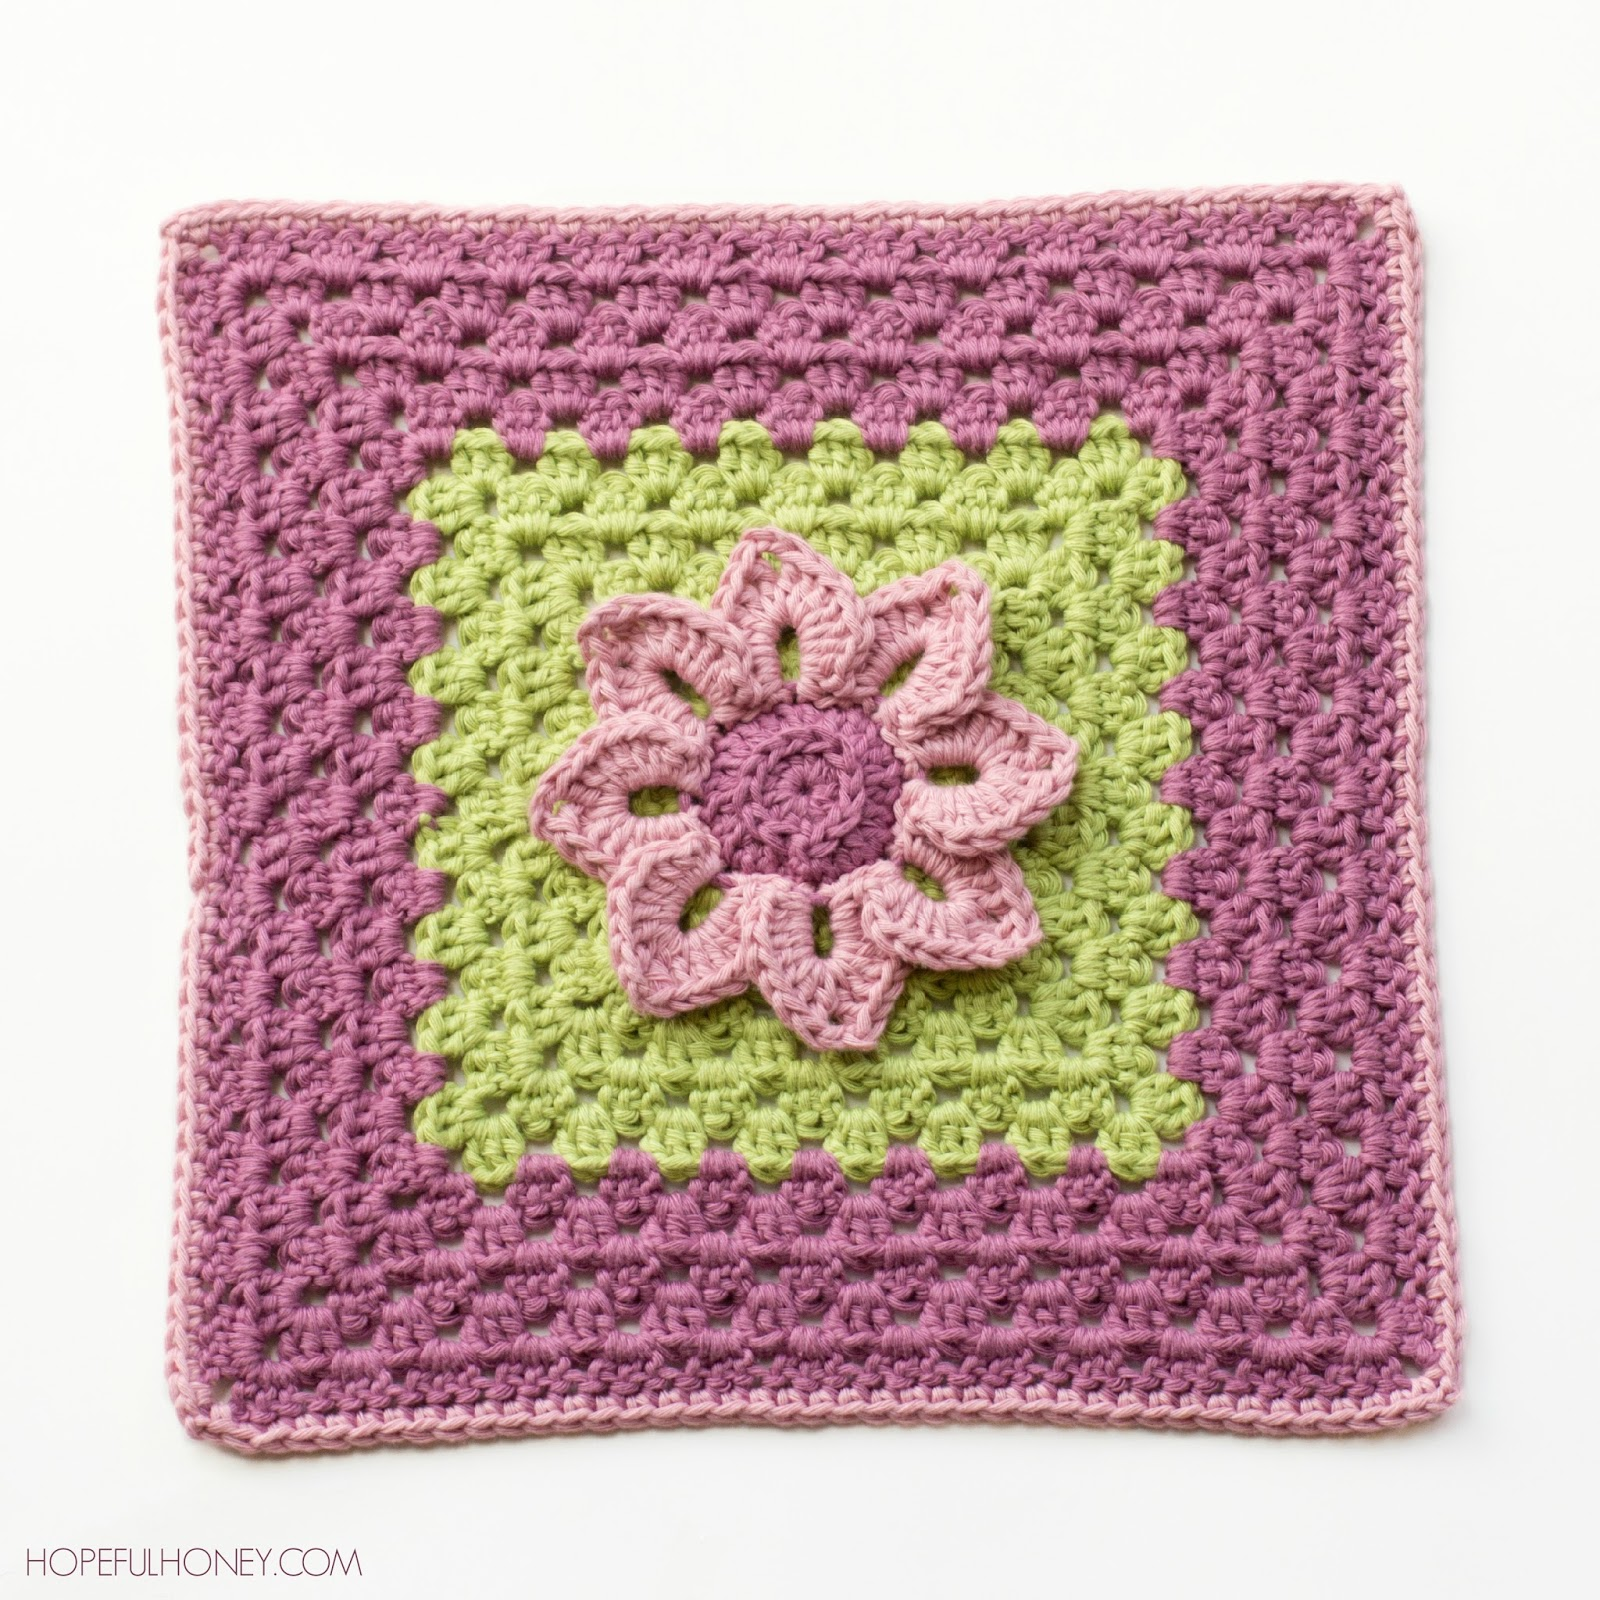 Crocheting Squares : ... Craft, Crochet, Create: Water Lily Afghan Square Crochet Pattern